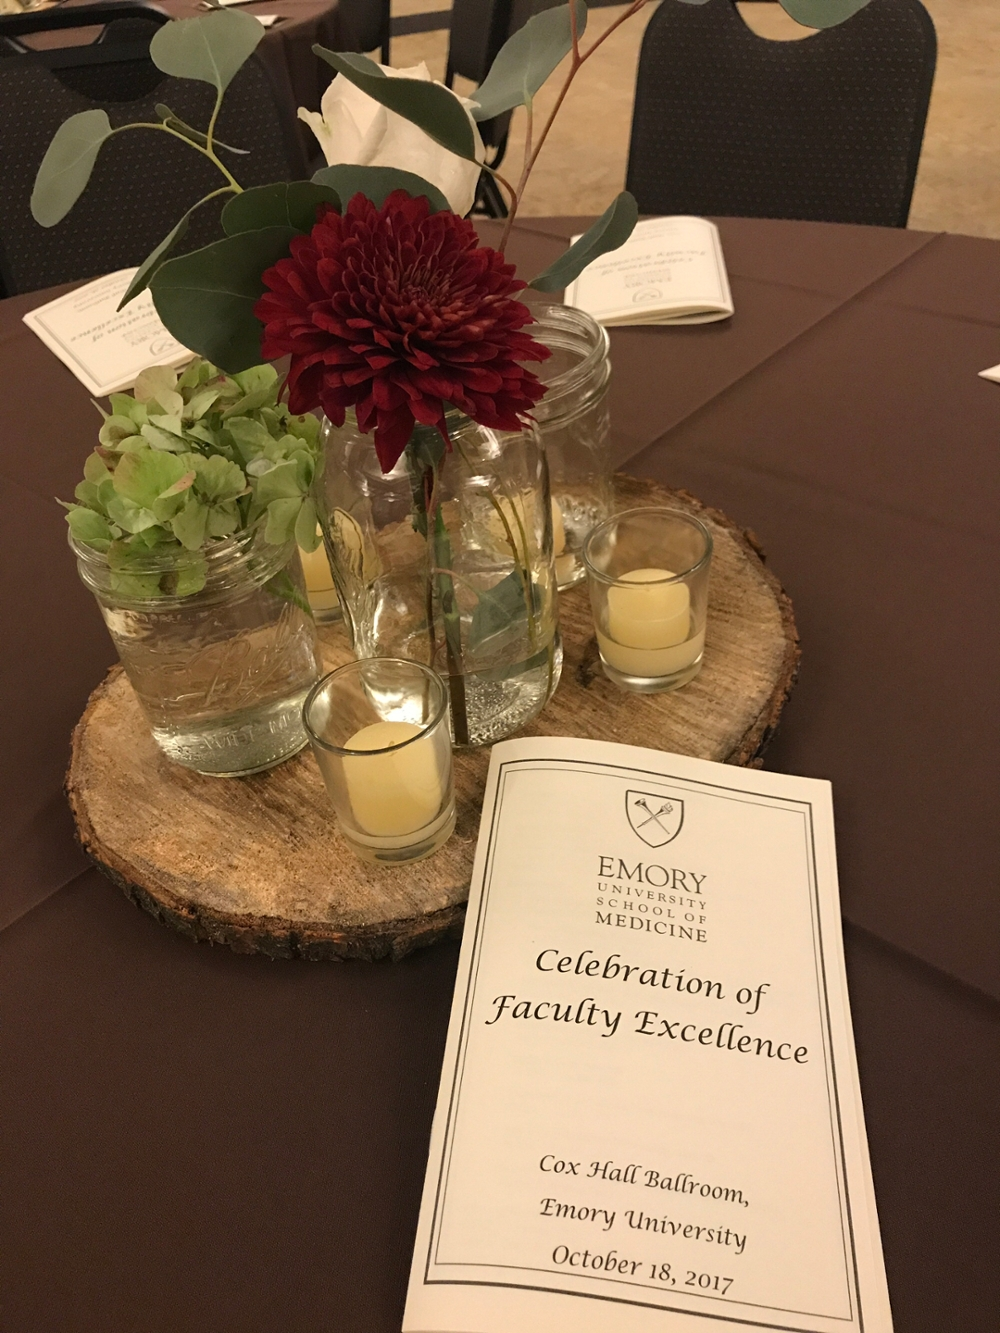 Event program on decorated table